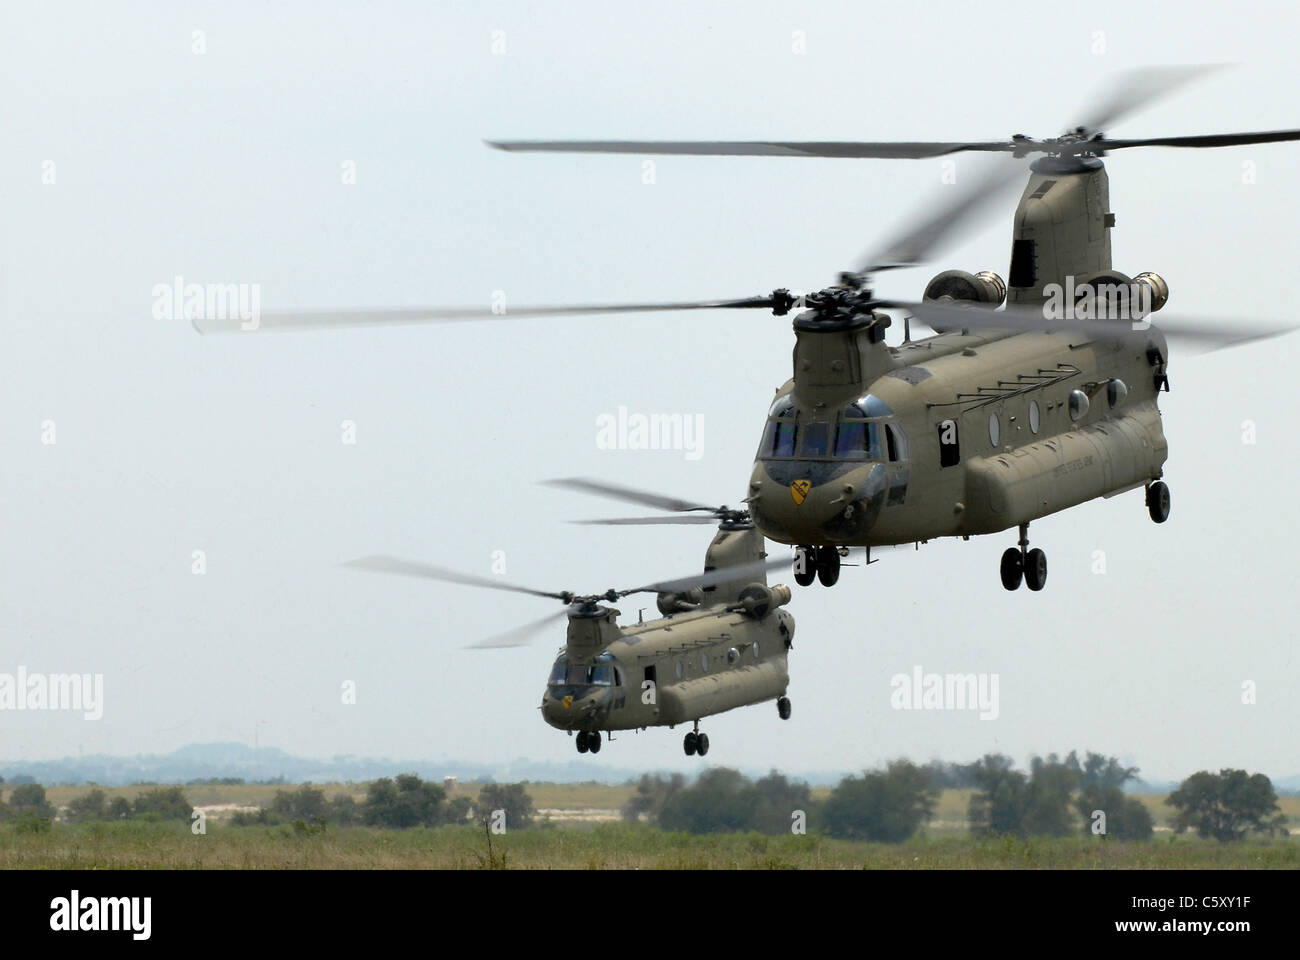 Army CH-47 Chinook helicopters in operation. - Stock Image